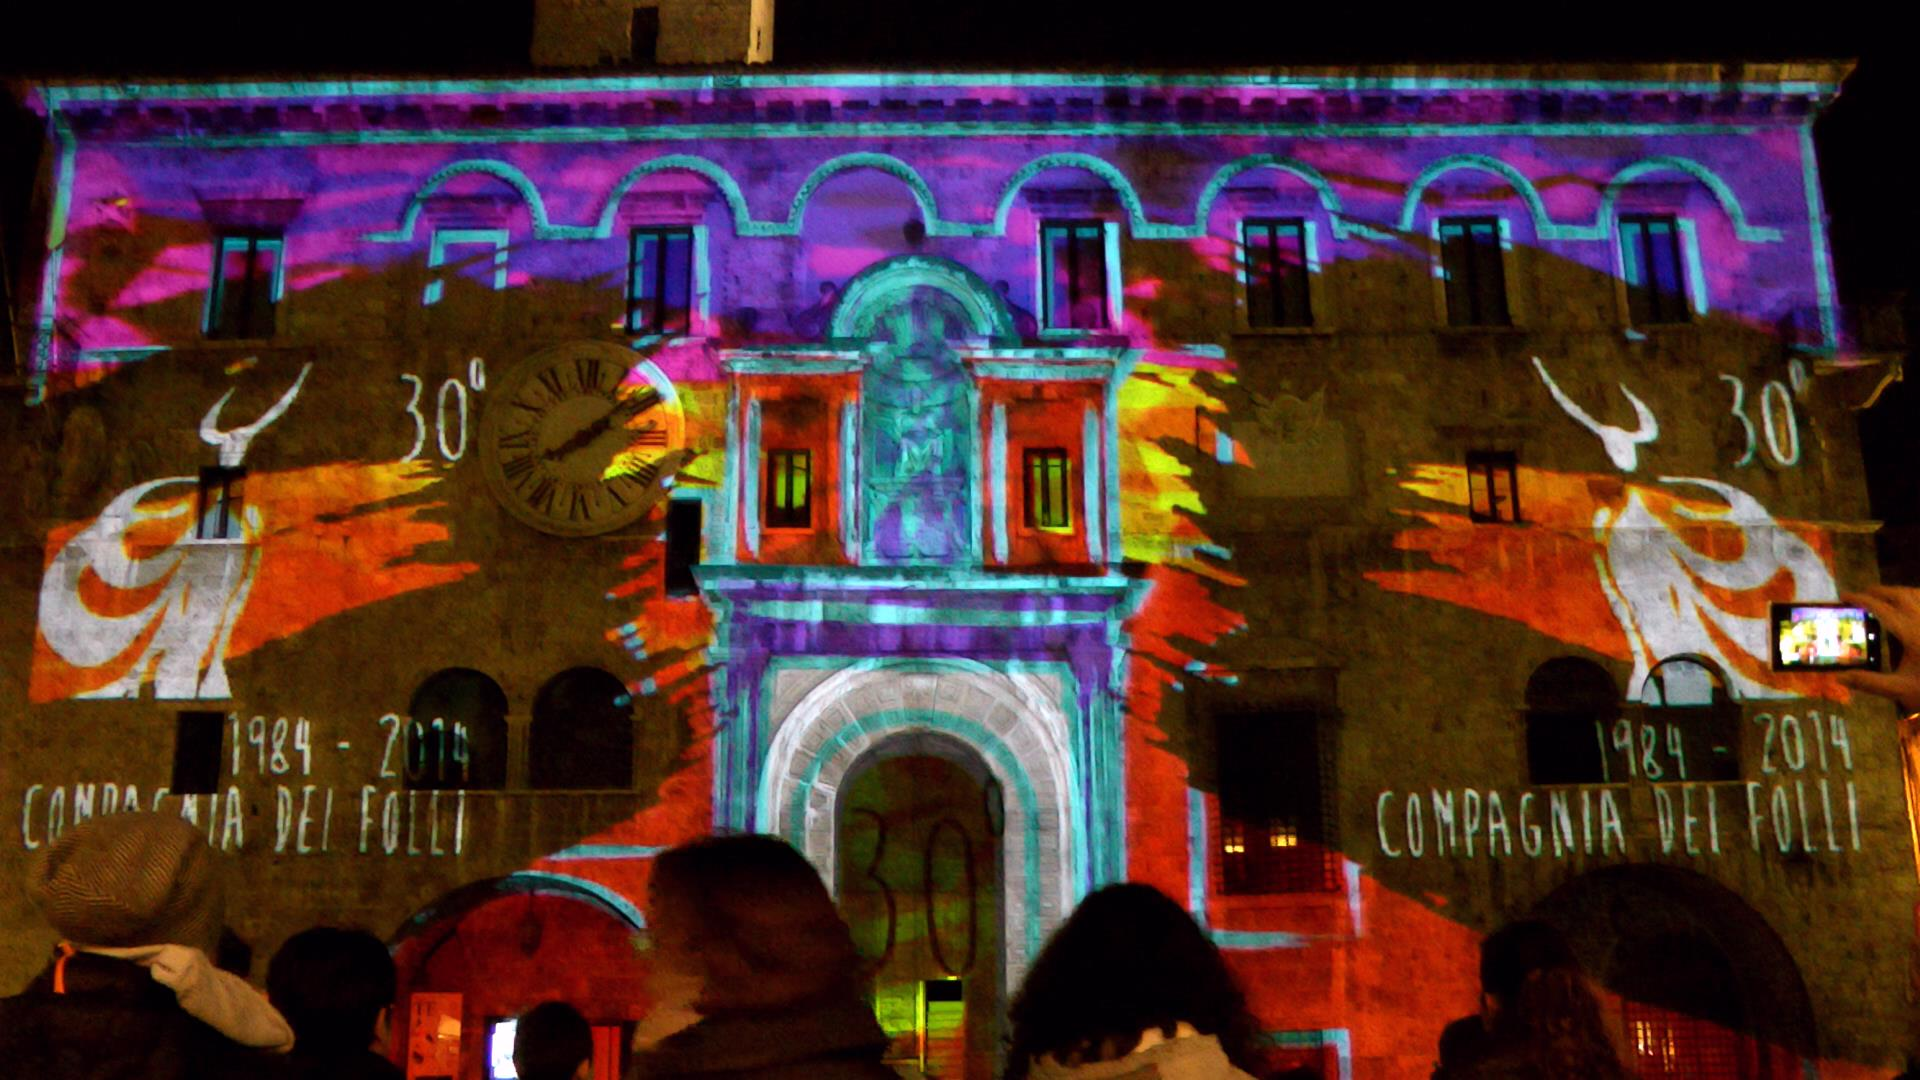 video mapping 30 folli